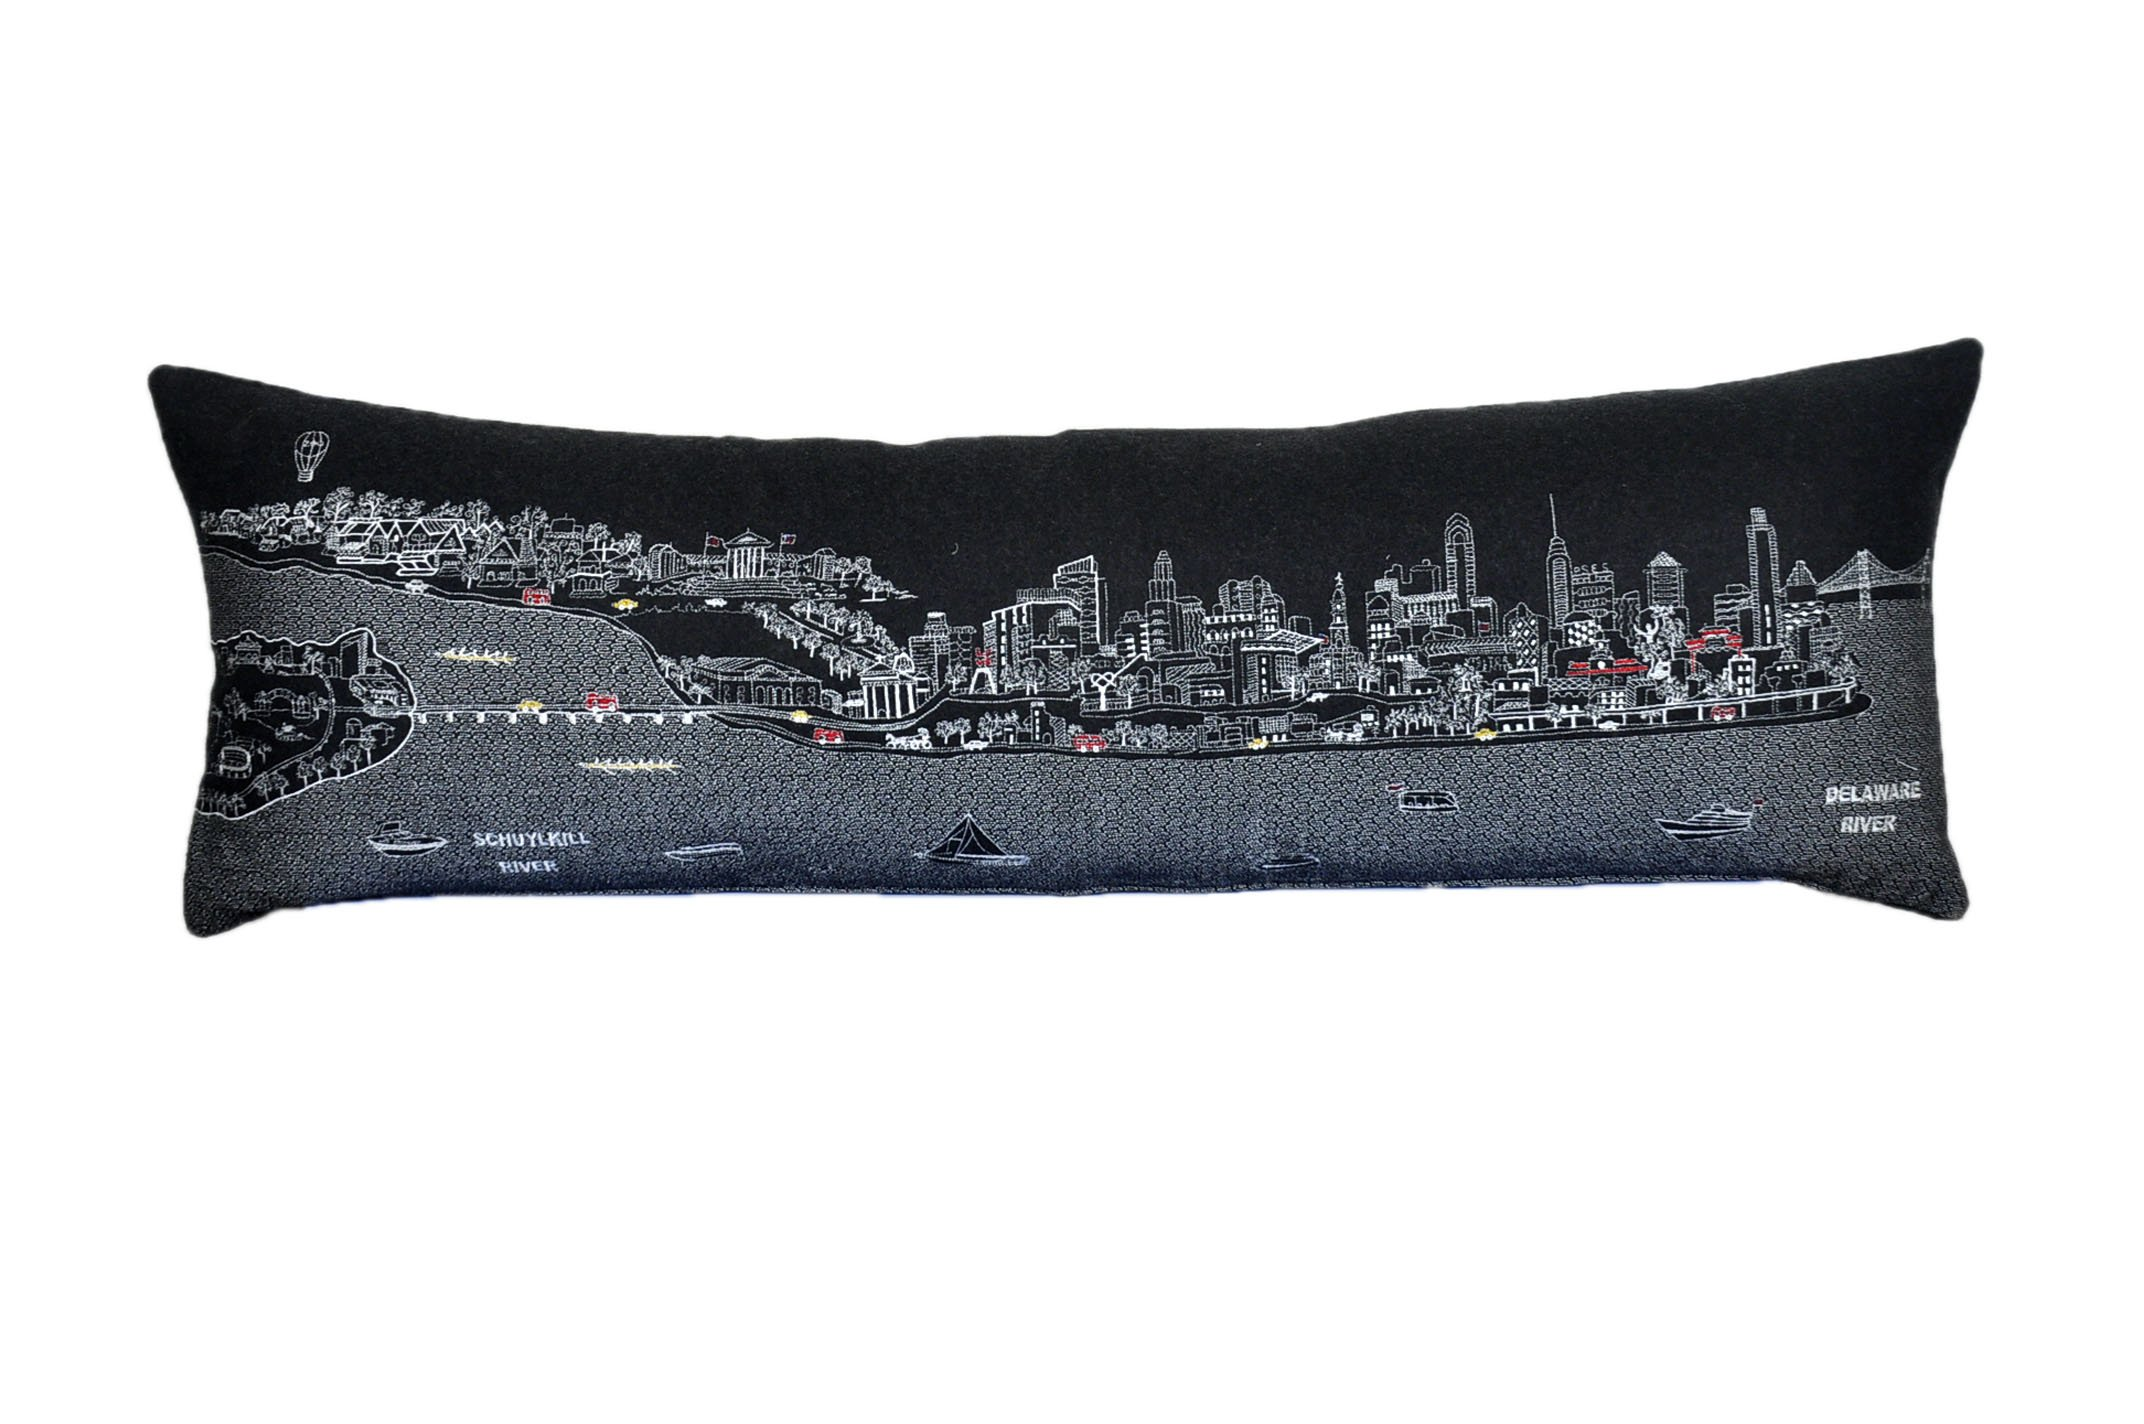 Beyond Cushions Polyester Throw Pillows Beyond Cushions Philadelphia Night Skyline King Size Embroidered Accent Pillow 46 X 14 X 5 Inches Black Model # PHI-NGT-KNG